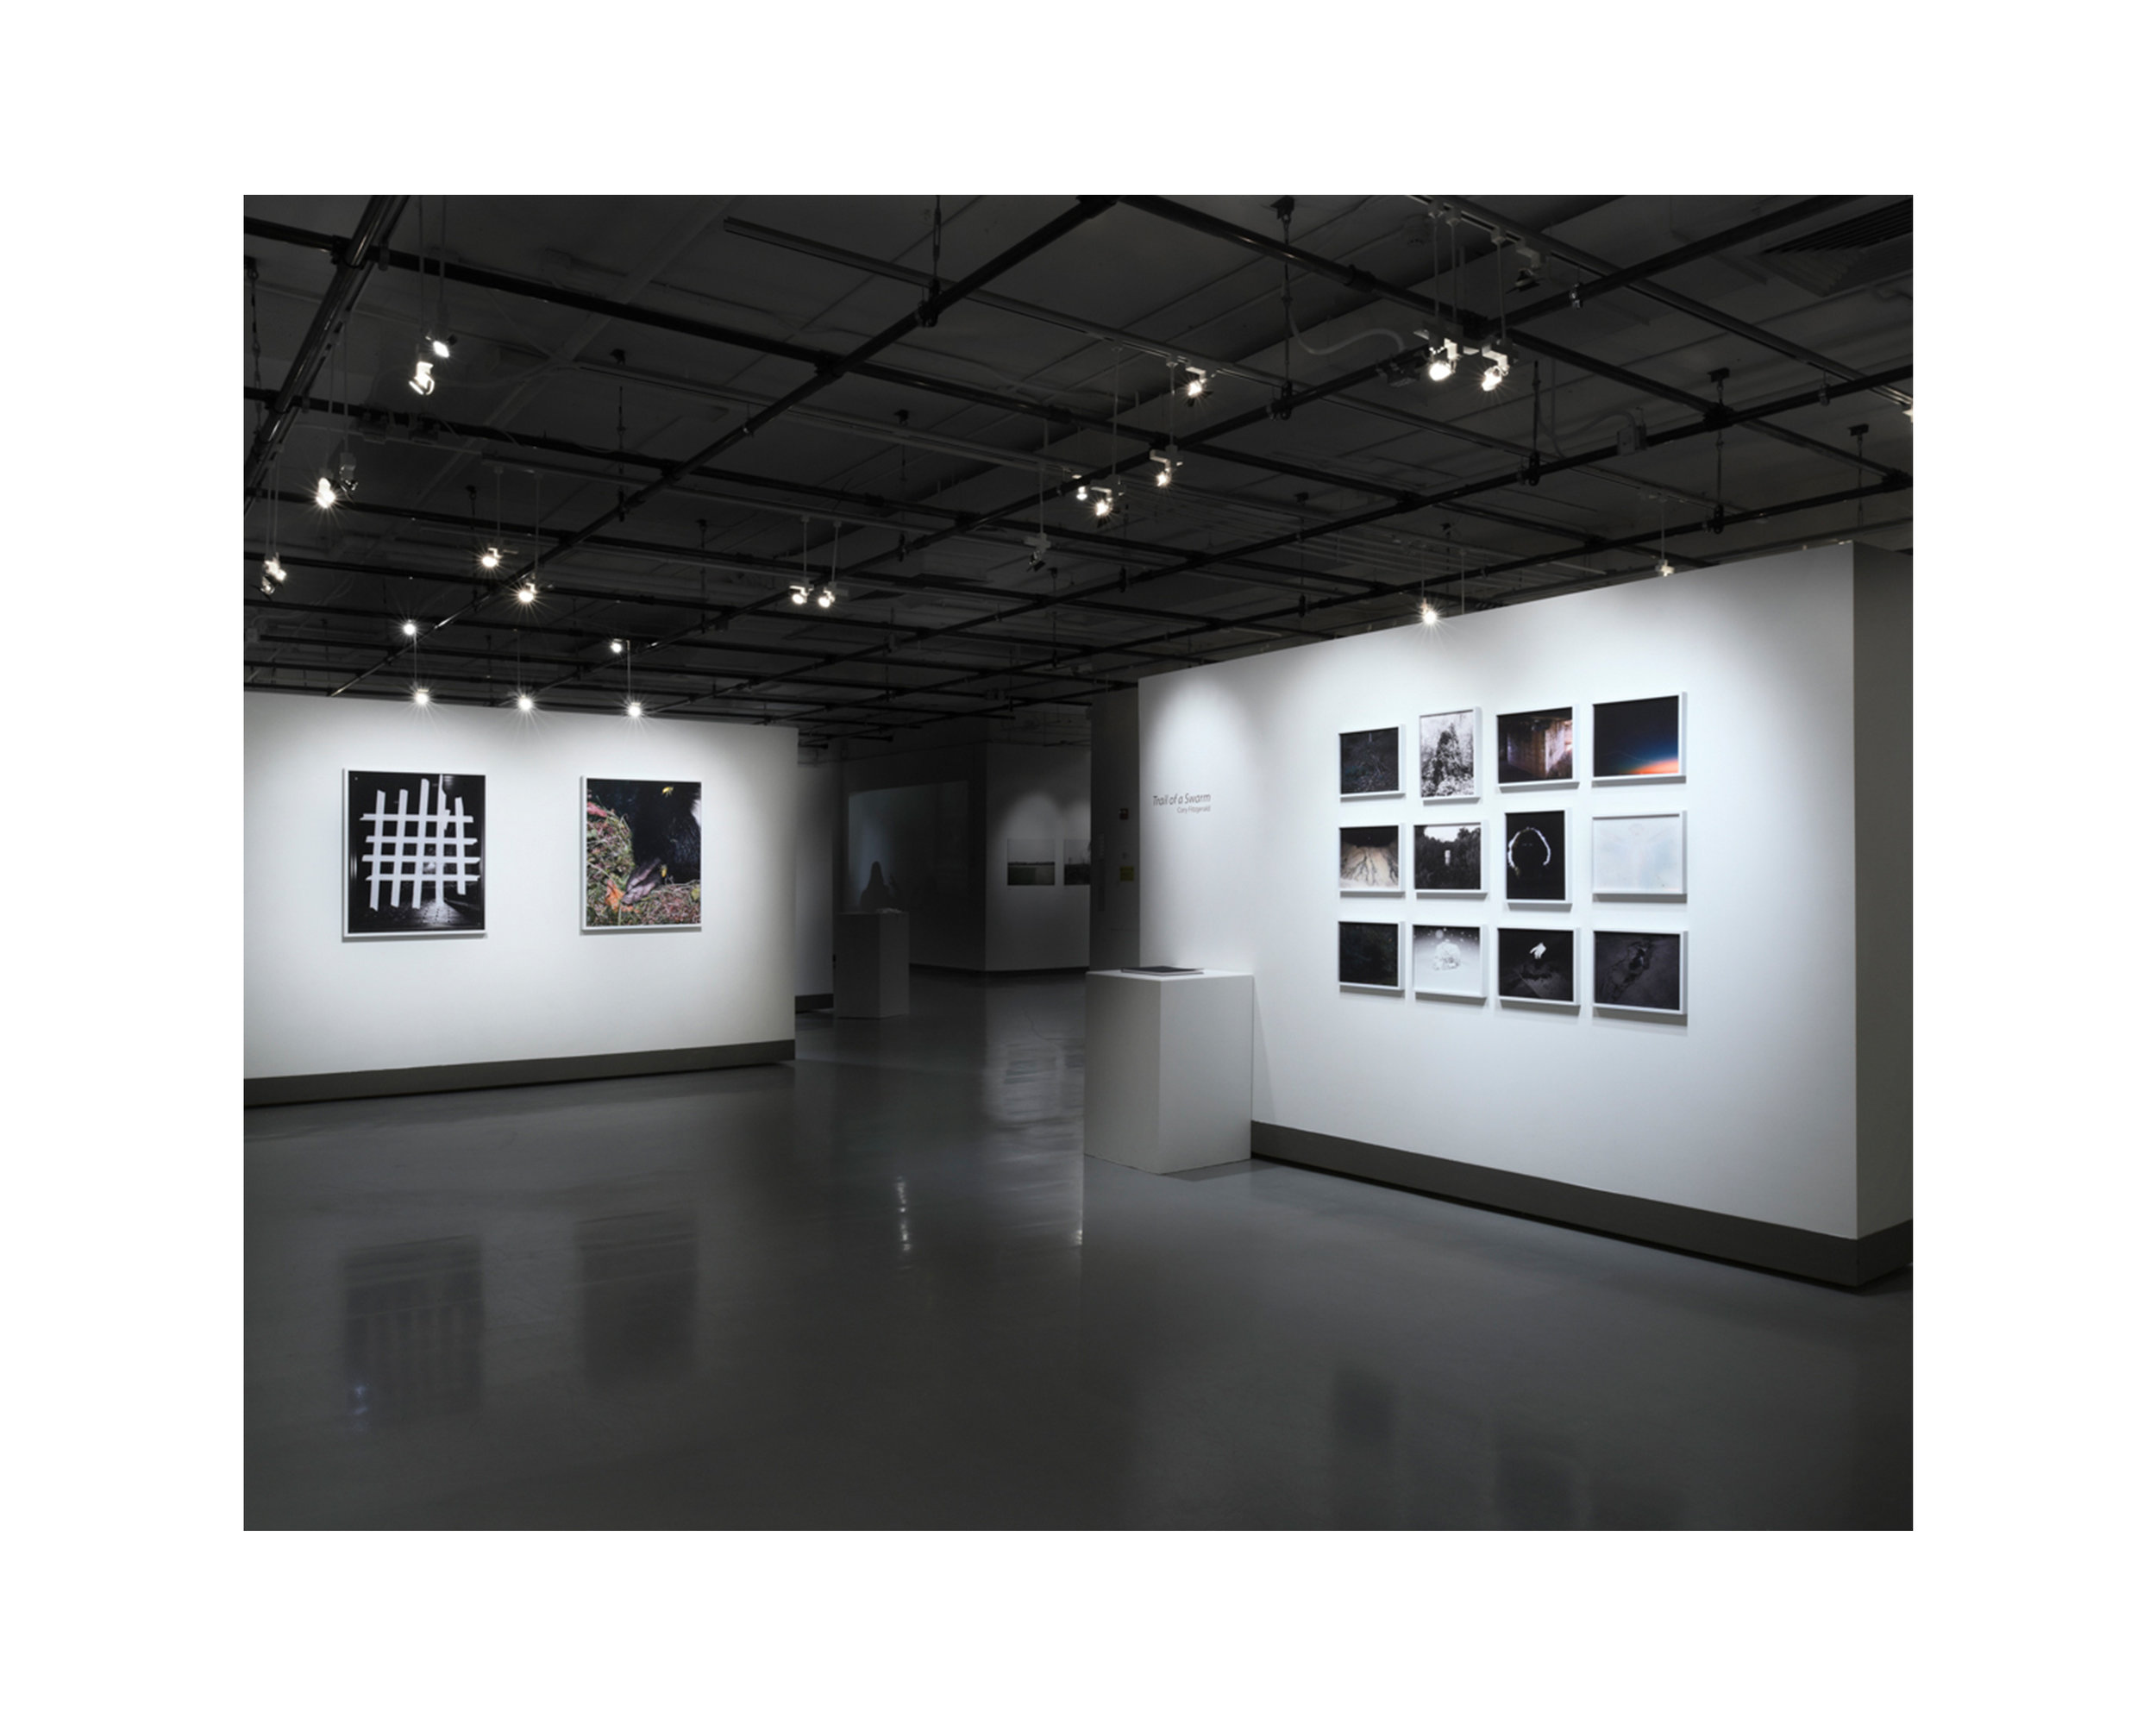 A display of photographs by Cory Fitzgerald